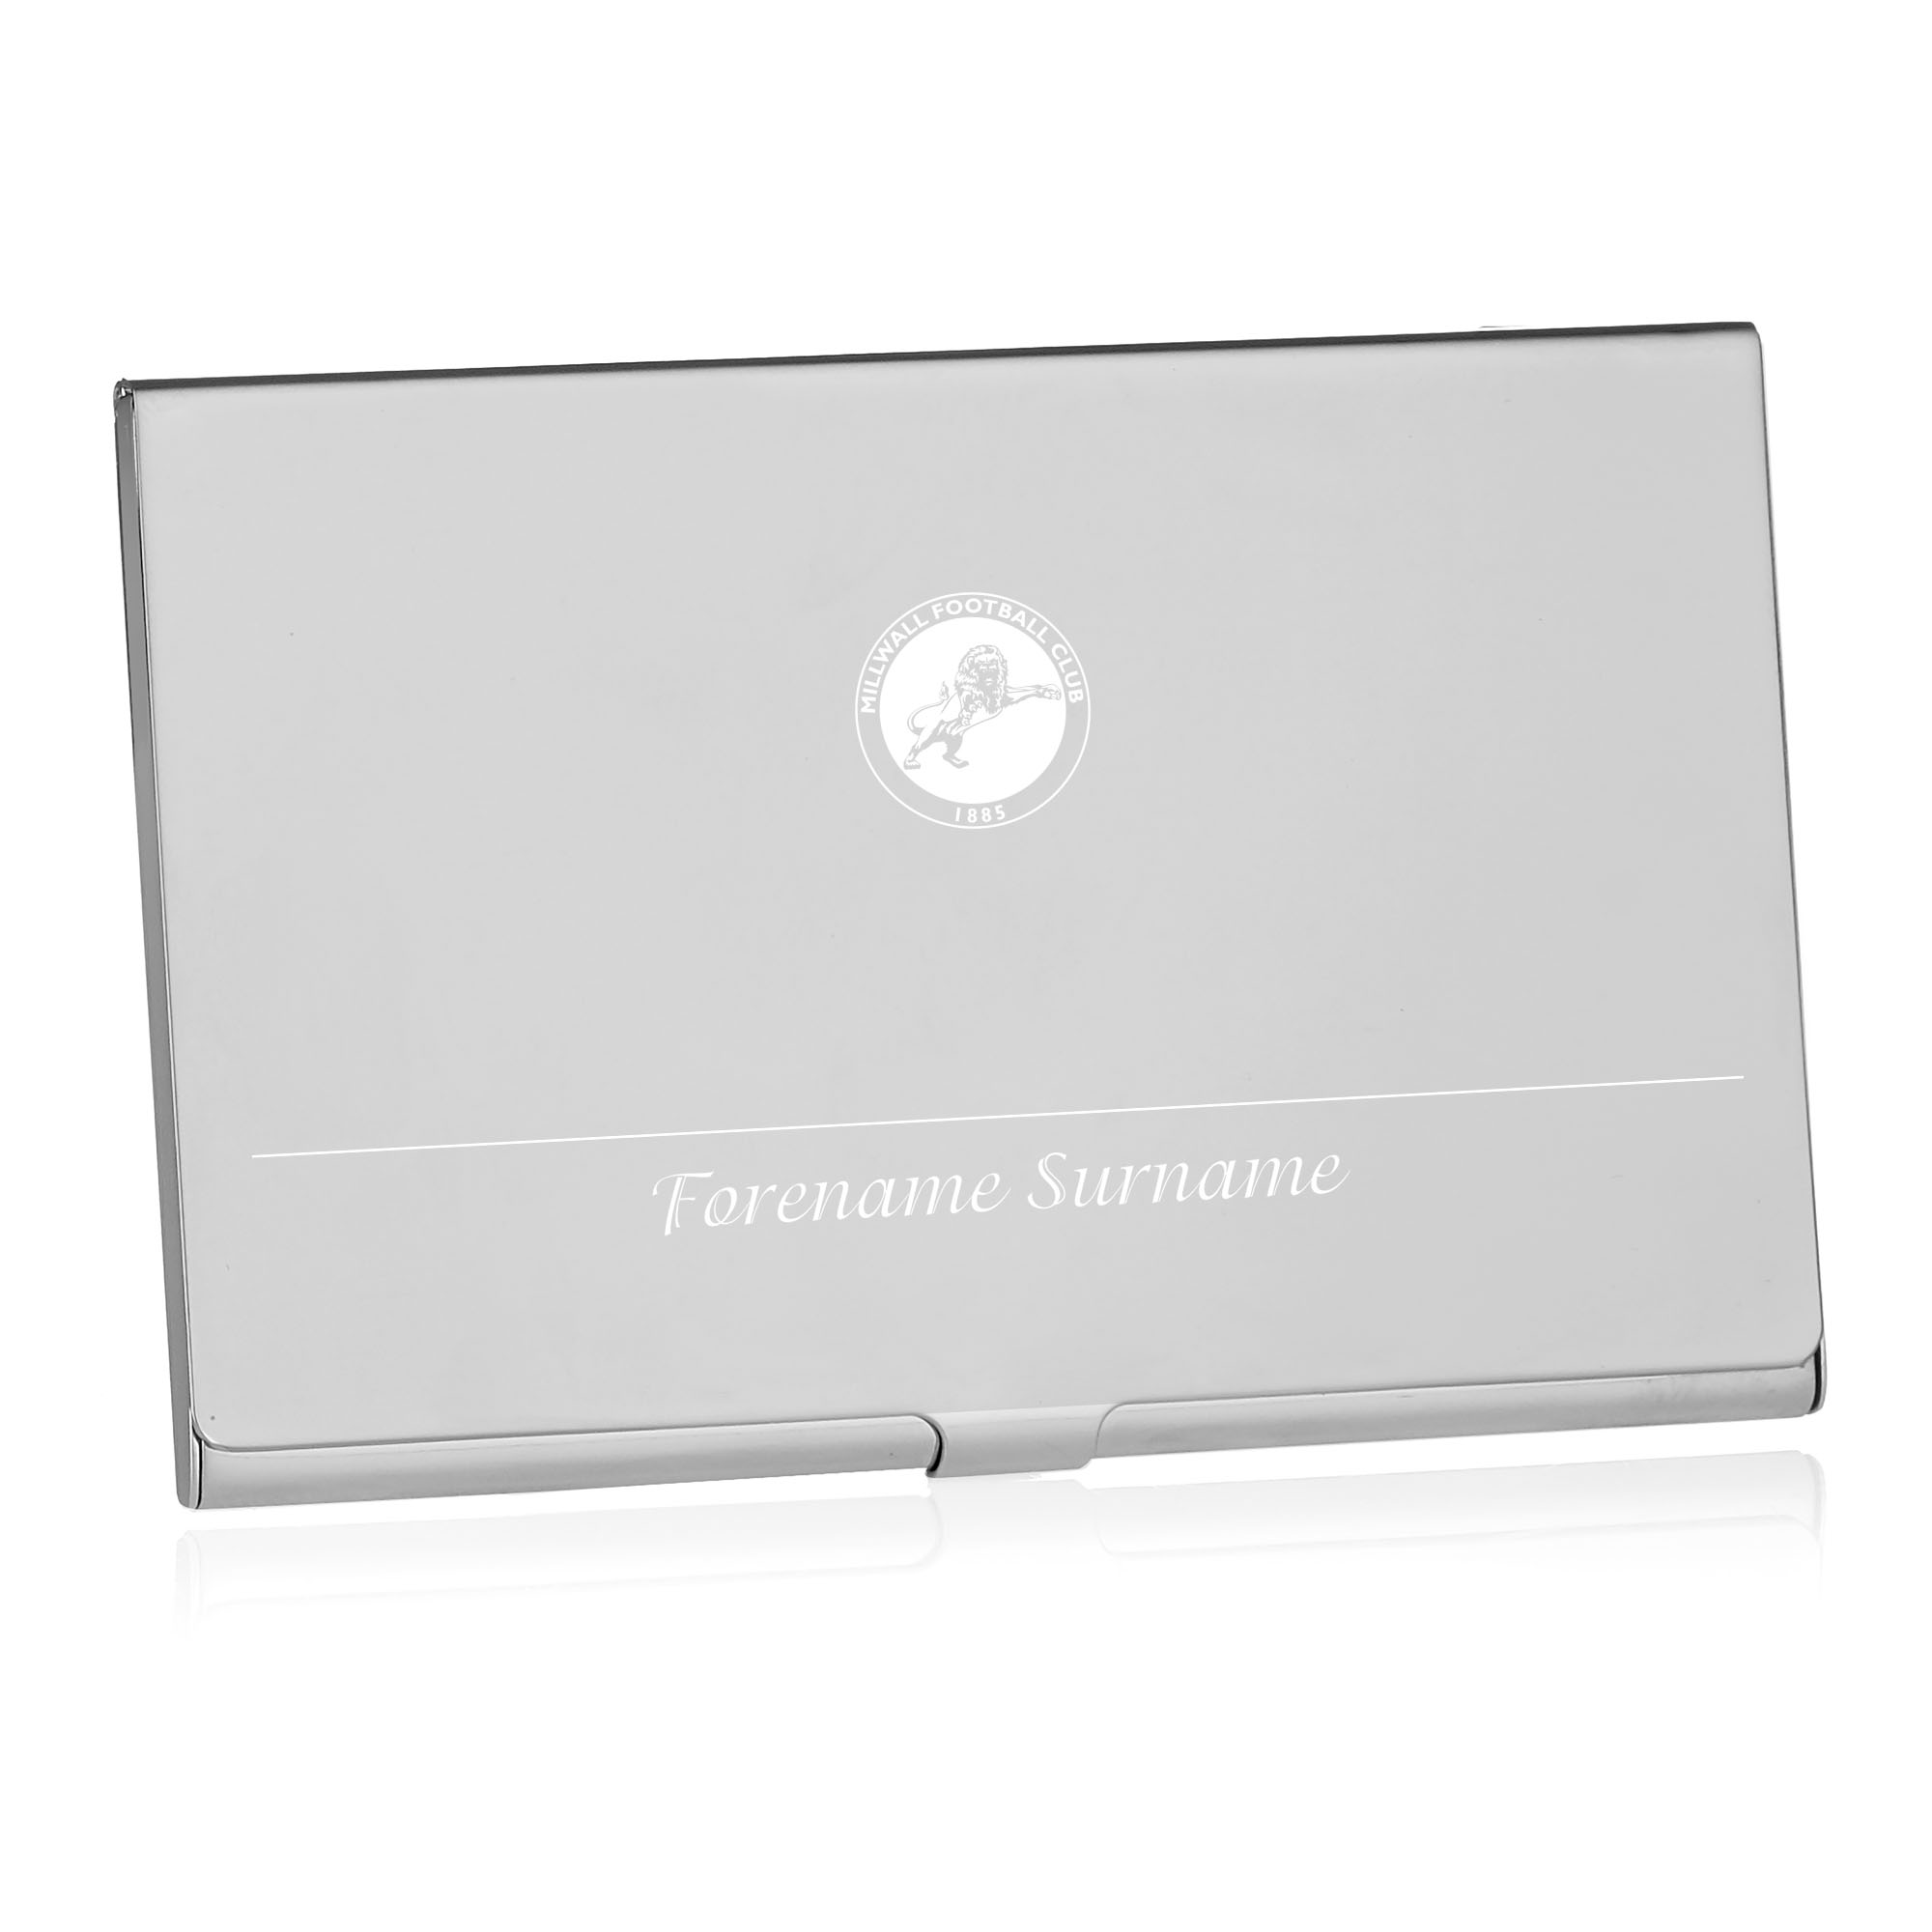 Millwall FC Executive Business Card Holder